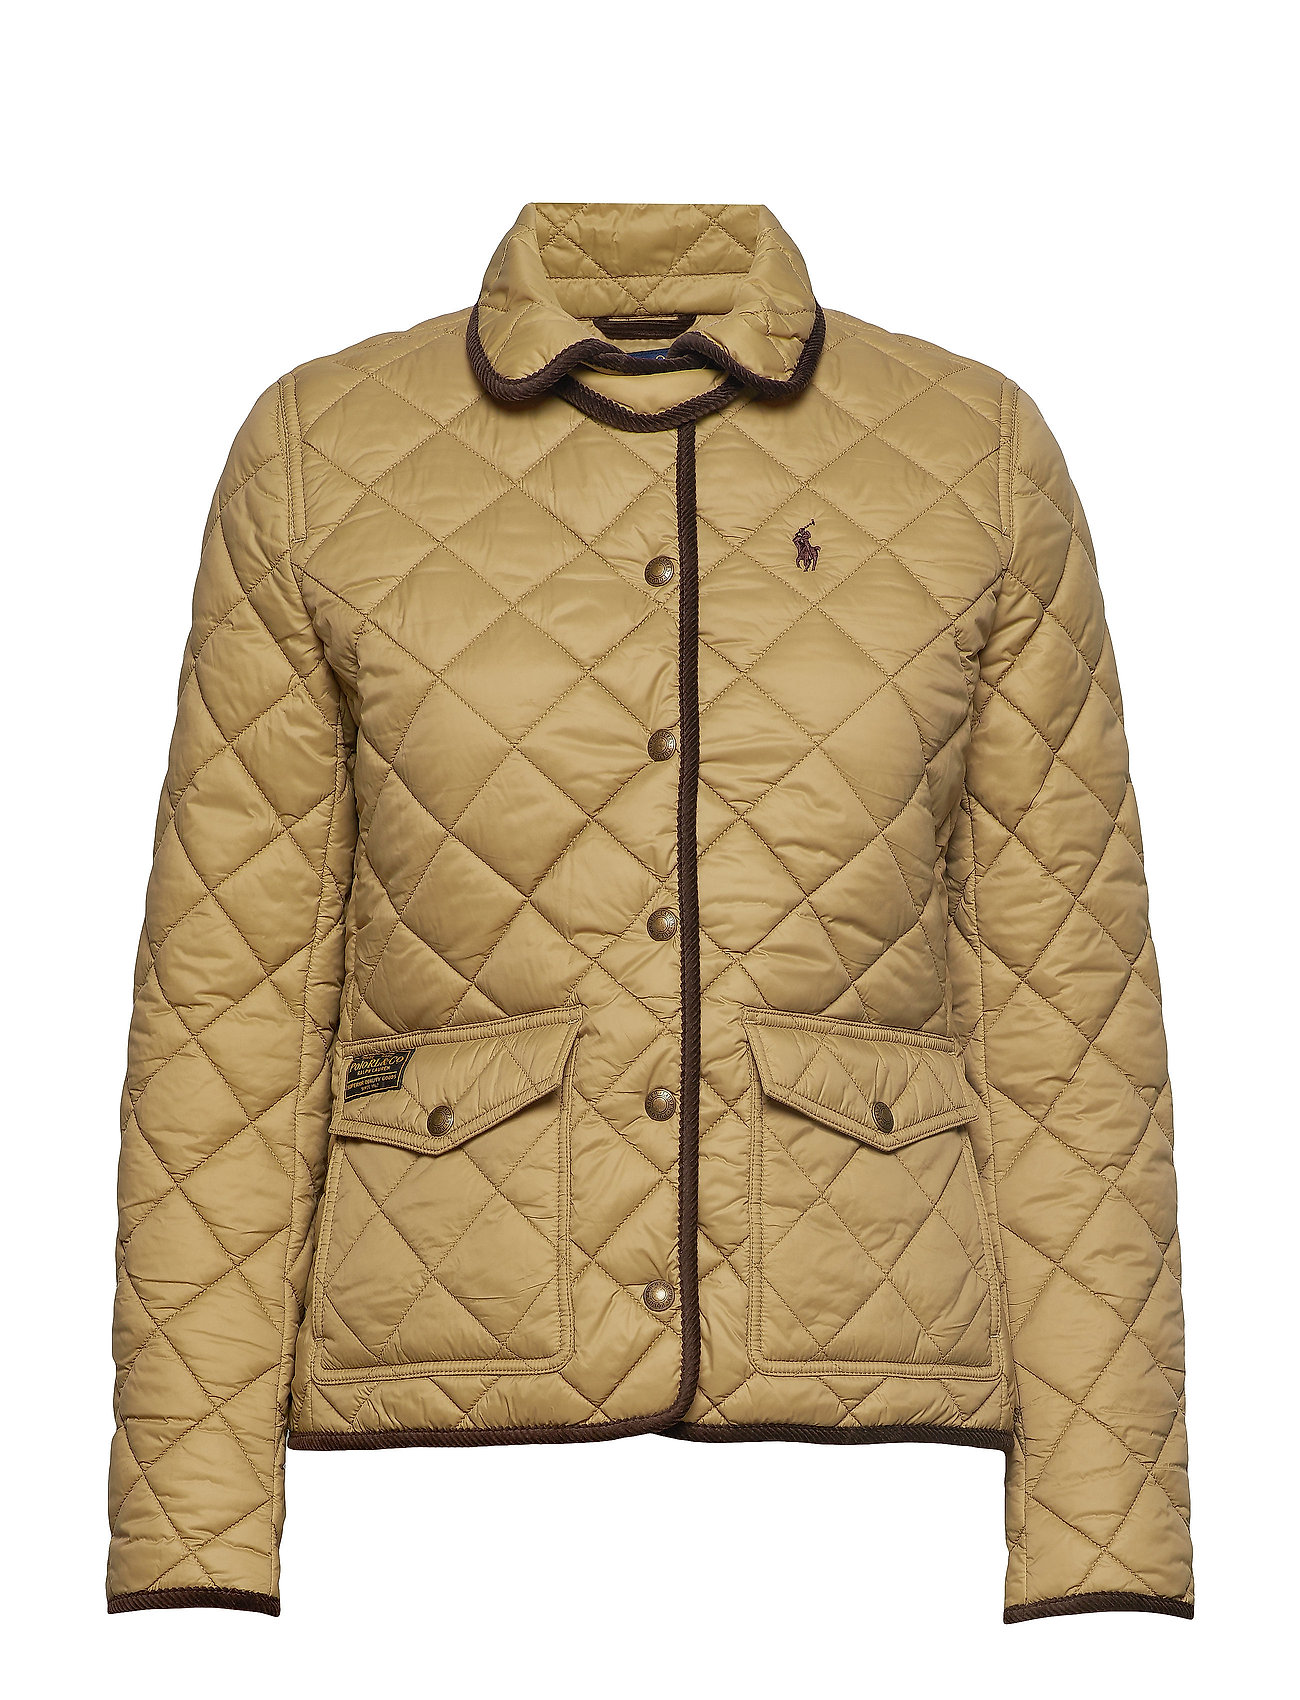 Polo Ralph Lauren Quilted Jacket - DESERT TAN